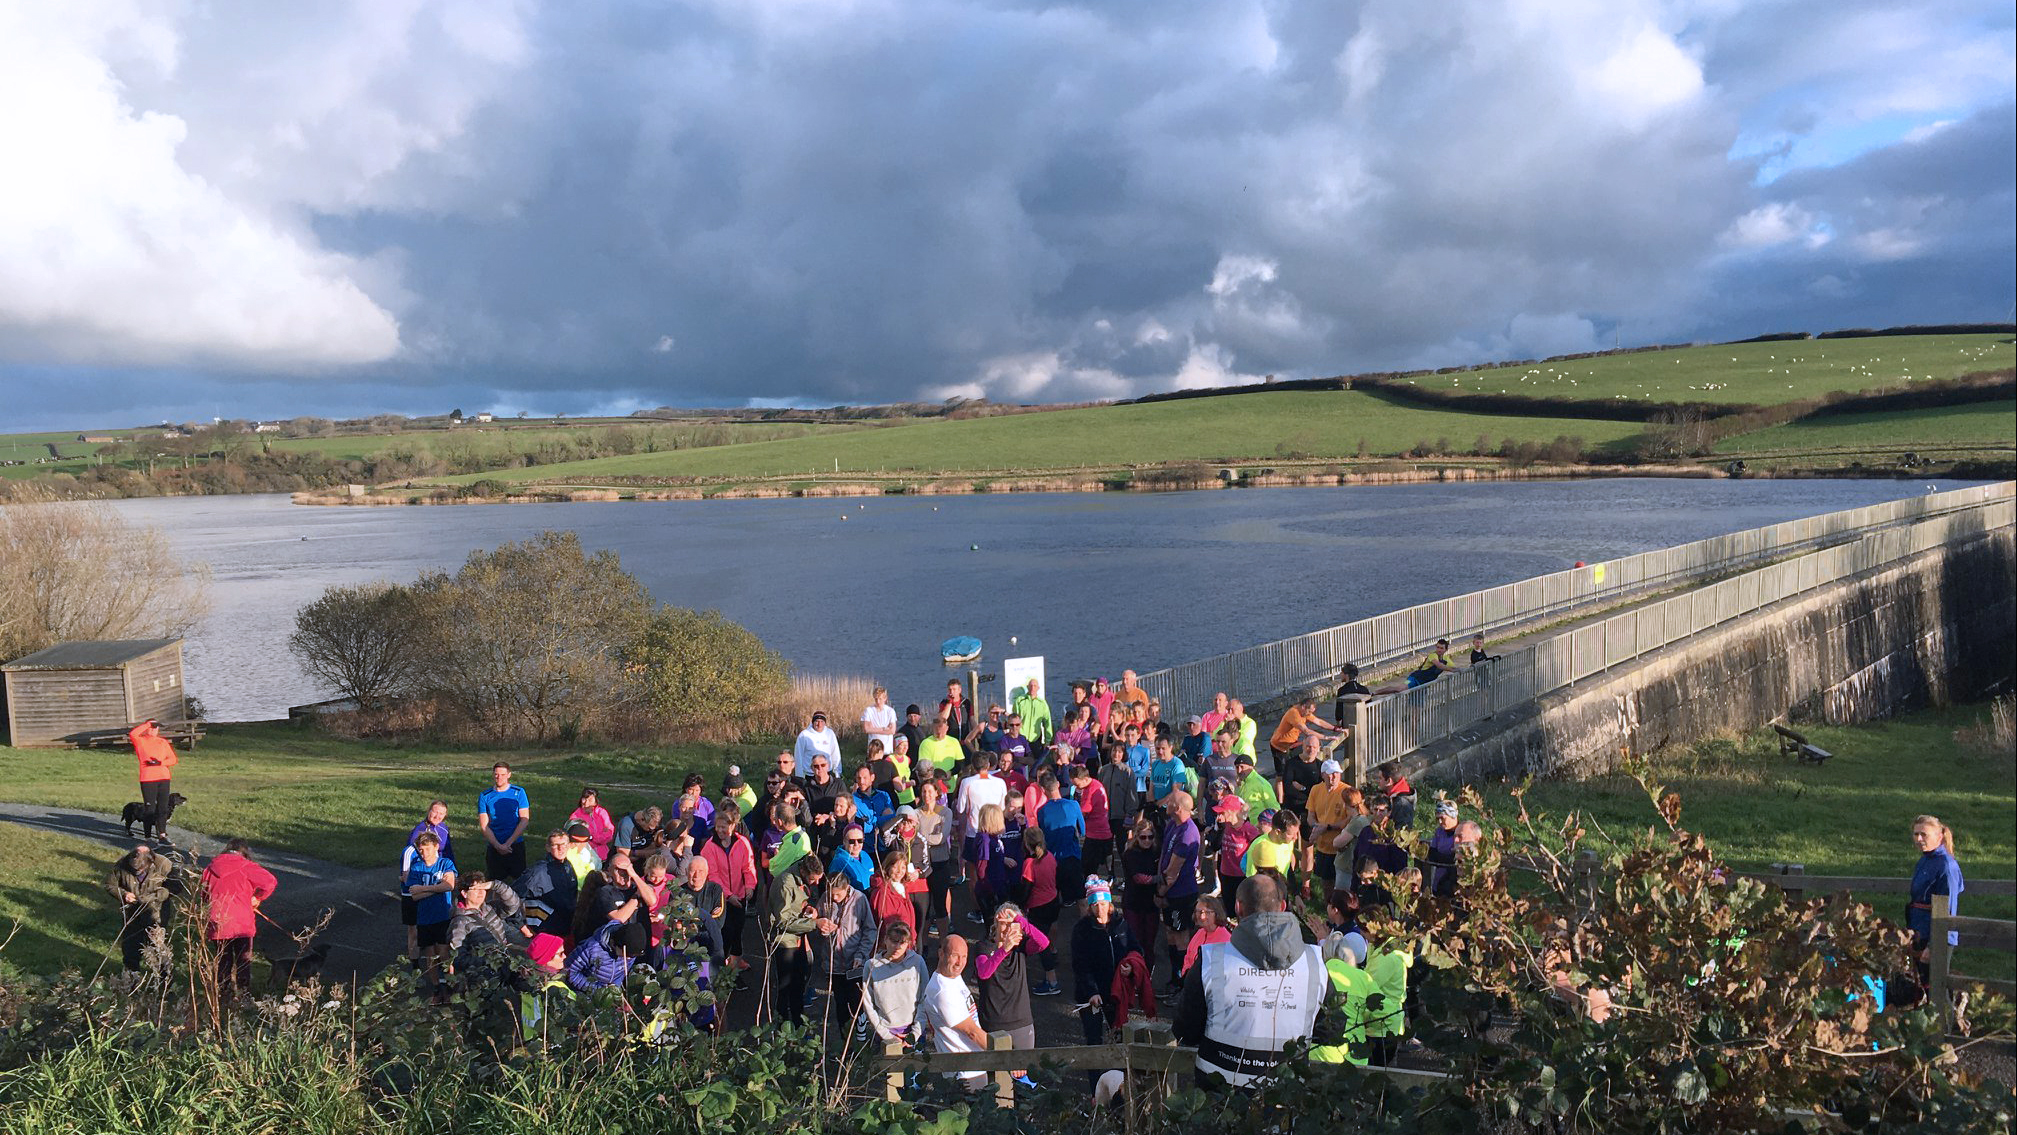 A Run Director in the foreground gives a briefinng to runners assembled in front of him in brightly coloured clothes with the expanse of Tamar Lake in the behind them all.